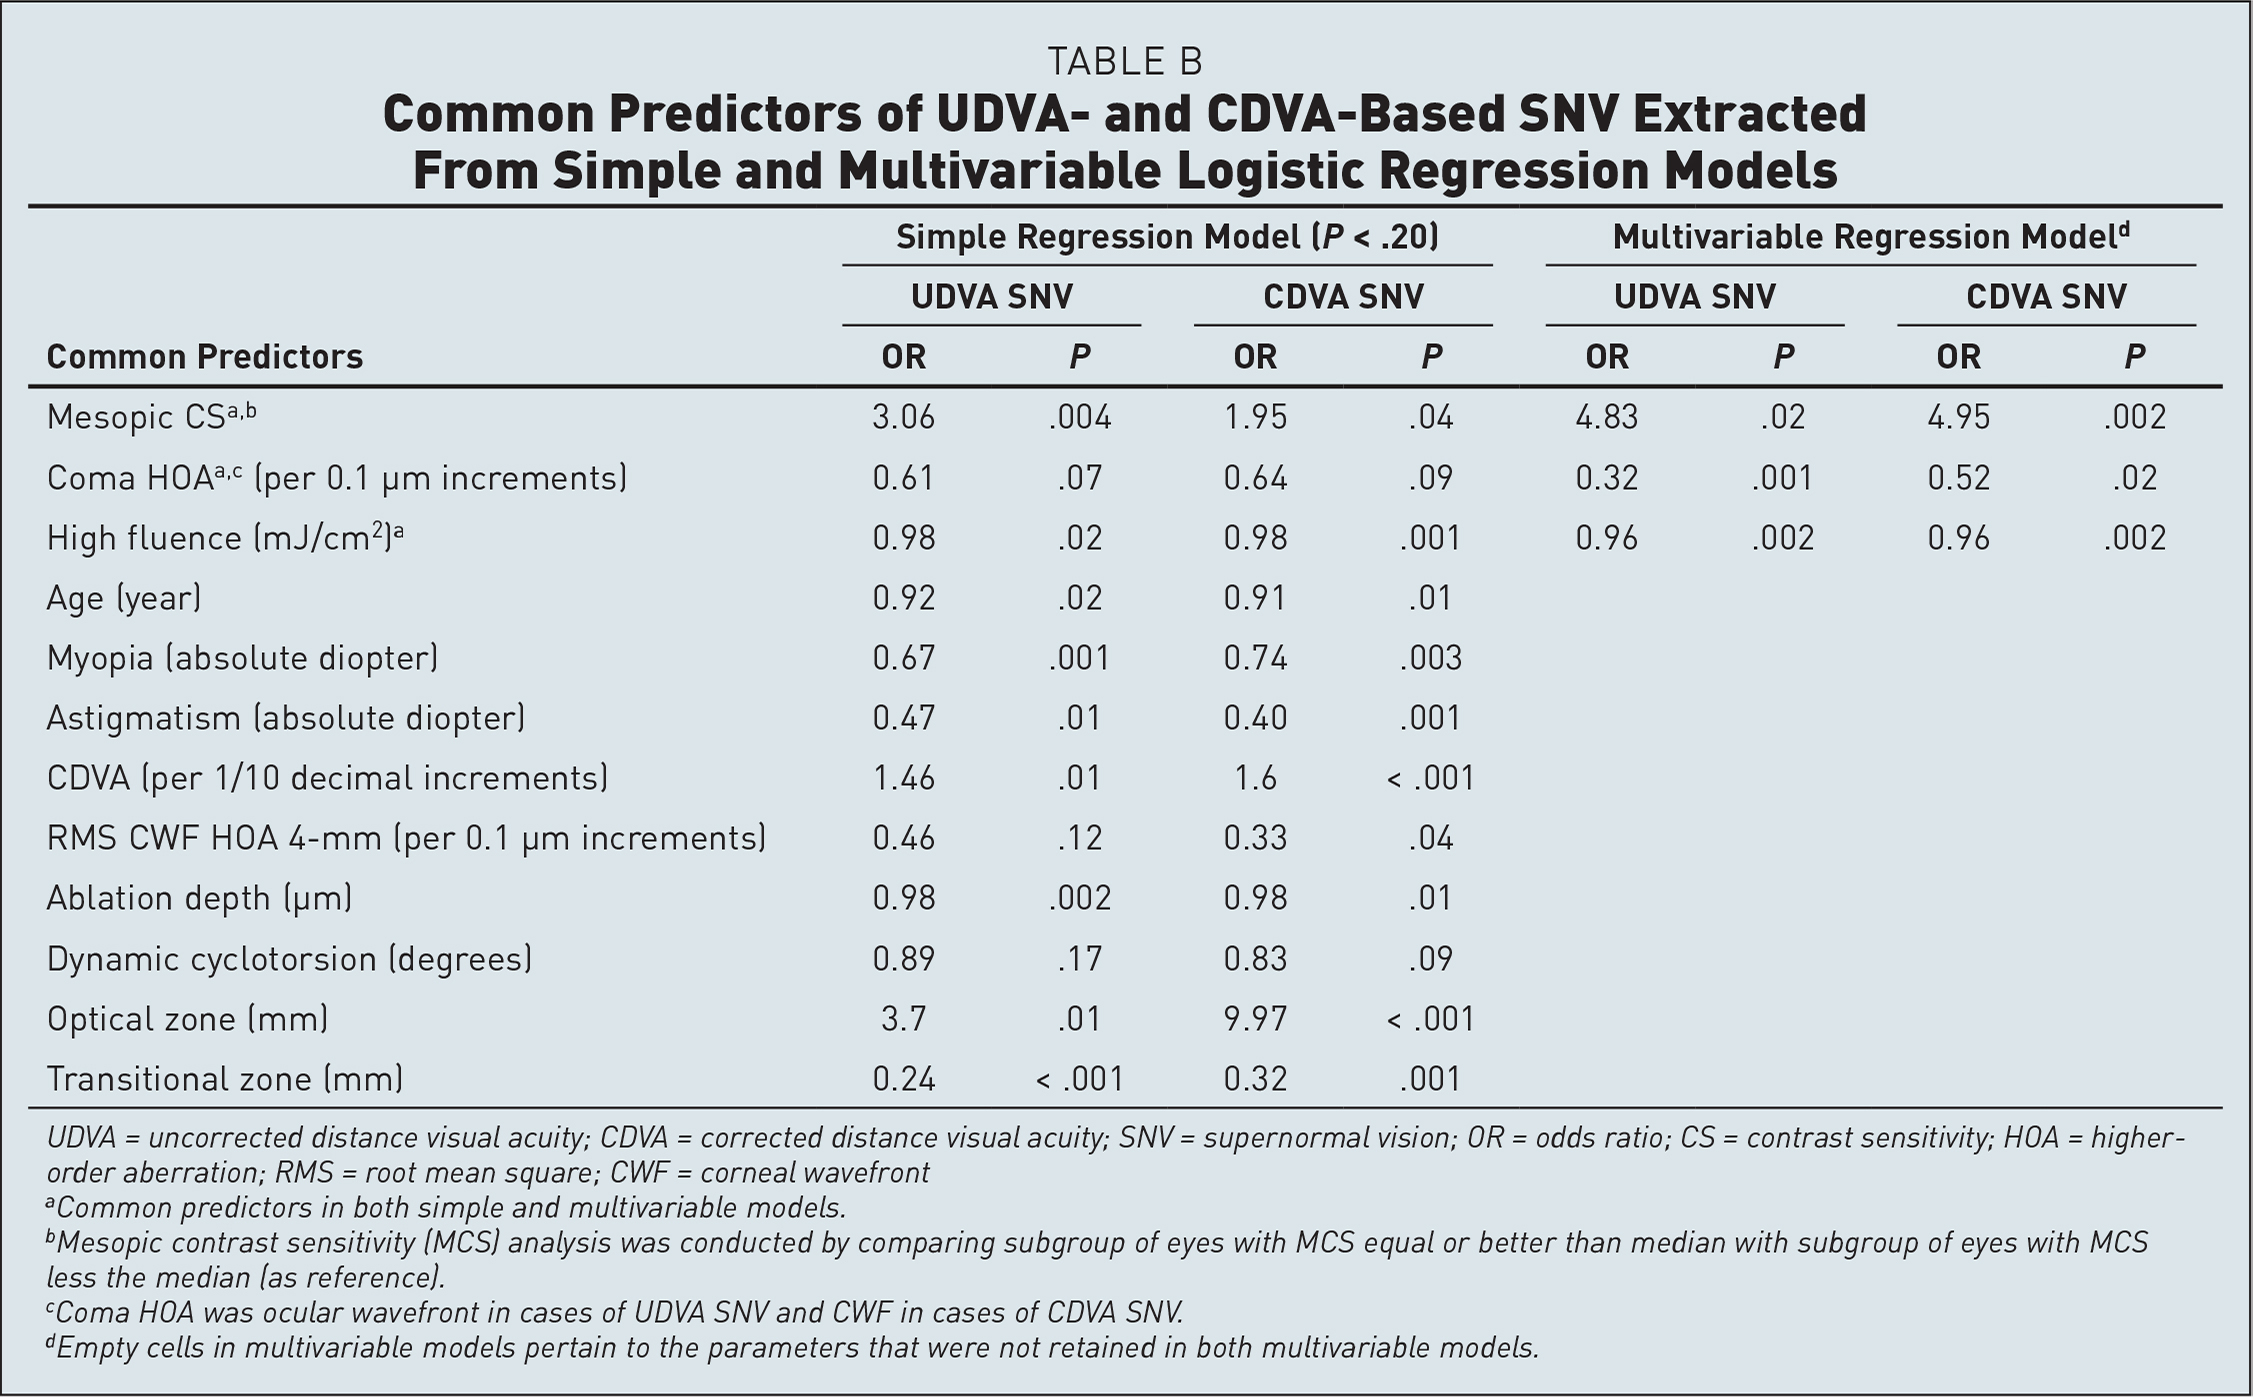 Common Predictors of UDVA- and CDVA-Based SNV Extracted From Simple and Multivariable Logistic Regression Models